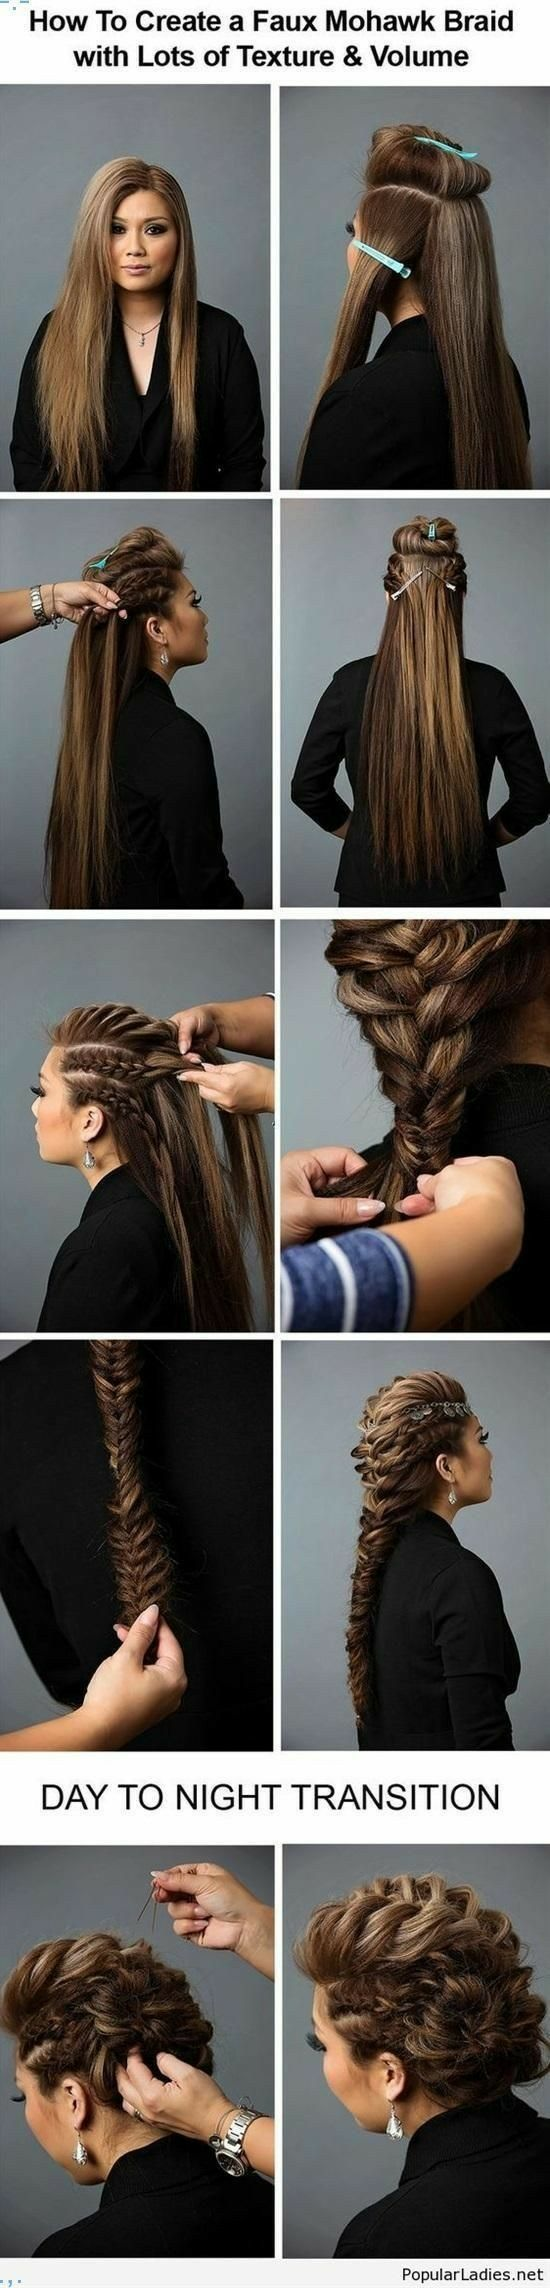 best braids images on pinterest hair dos braid styles and